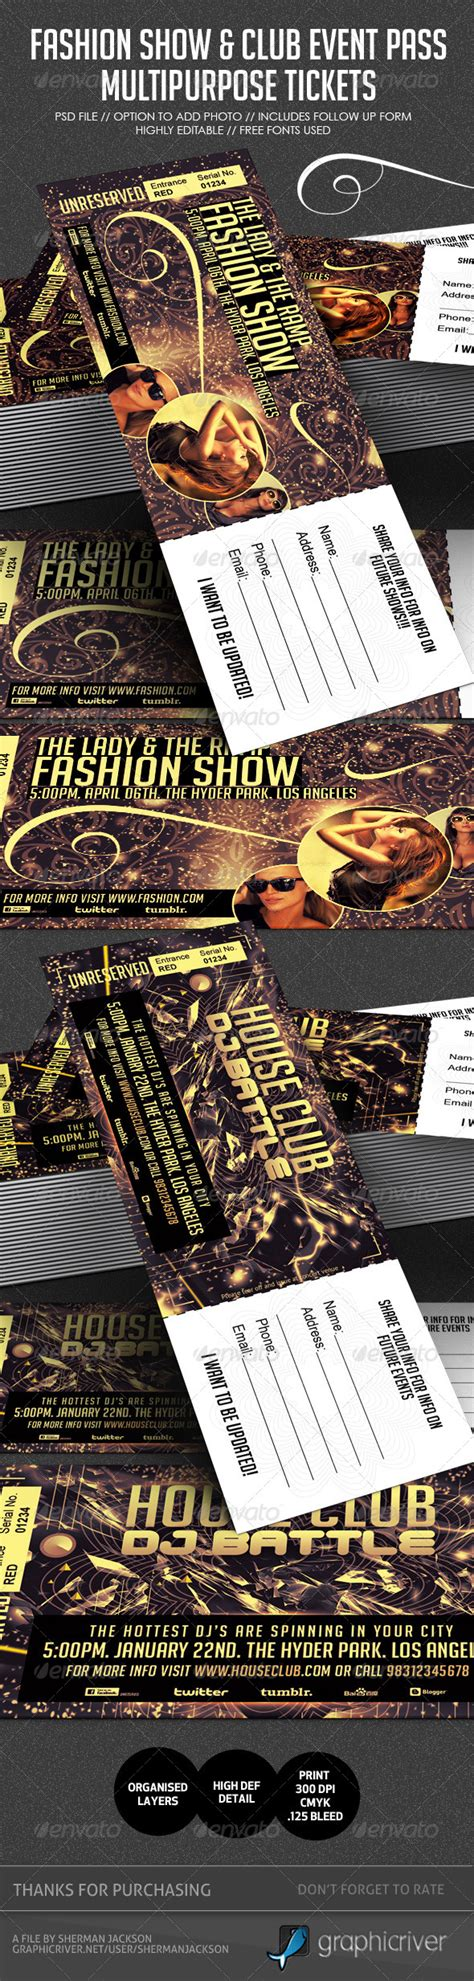 fashion show ticket template vip concert passes template 187 dolunai